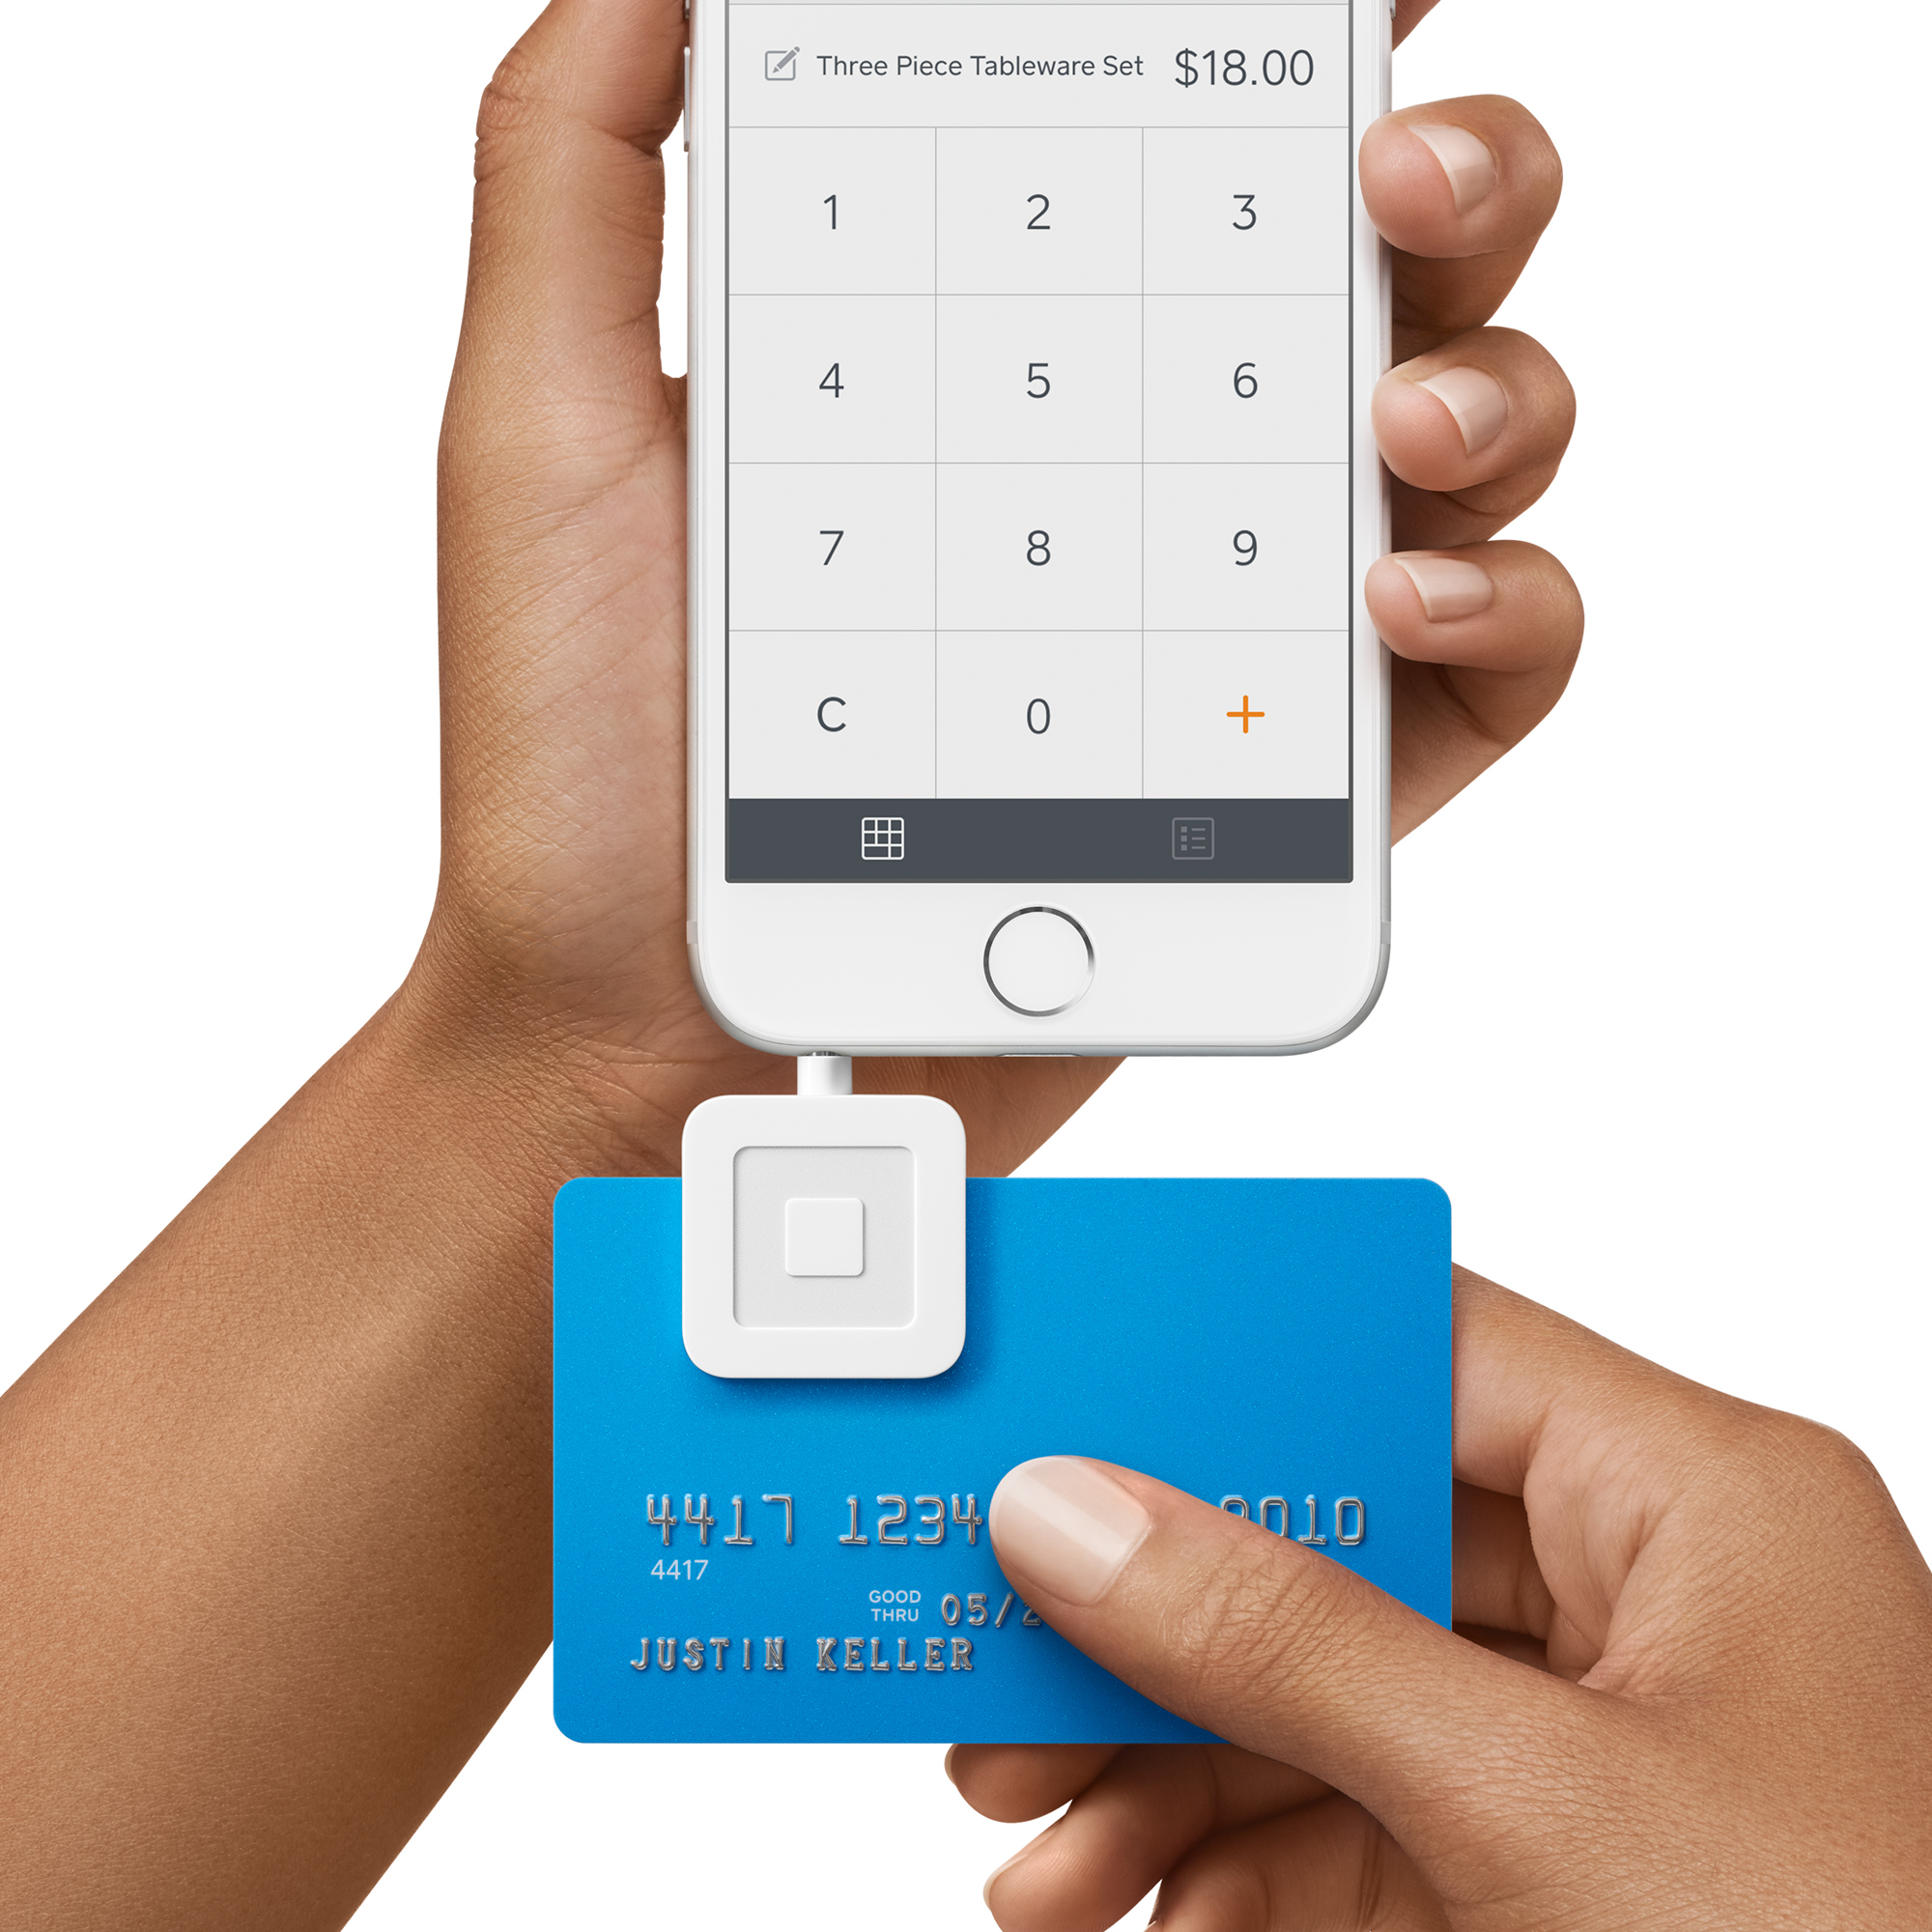 credit card magstripe reader walmart